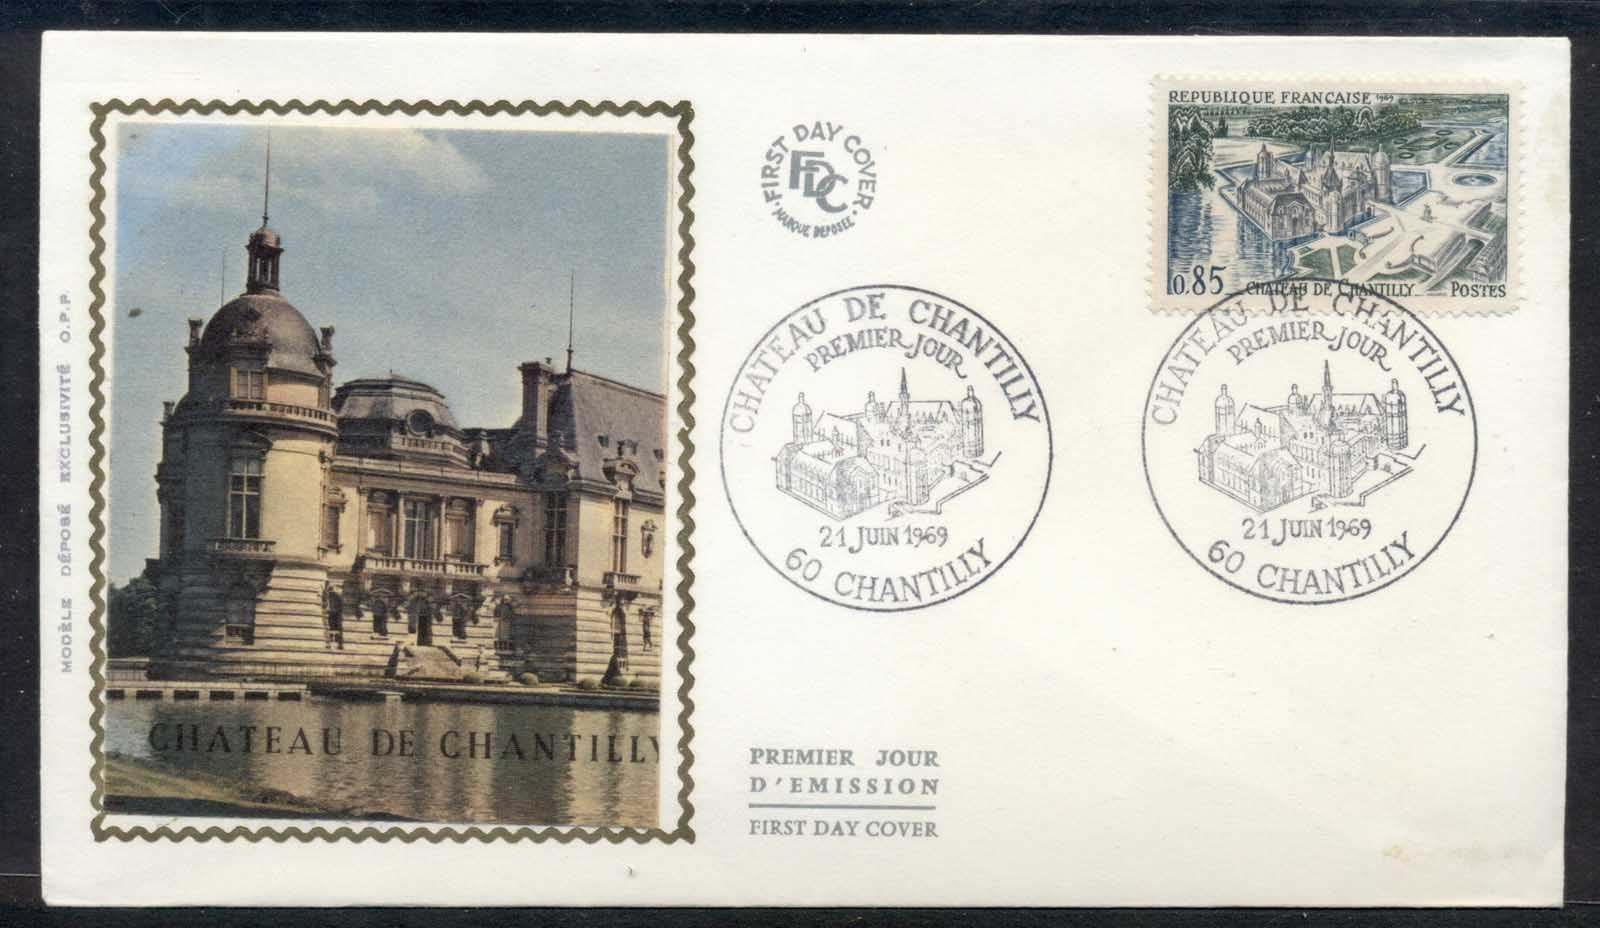 France 1969 Chateau de Chantilly FDC